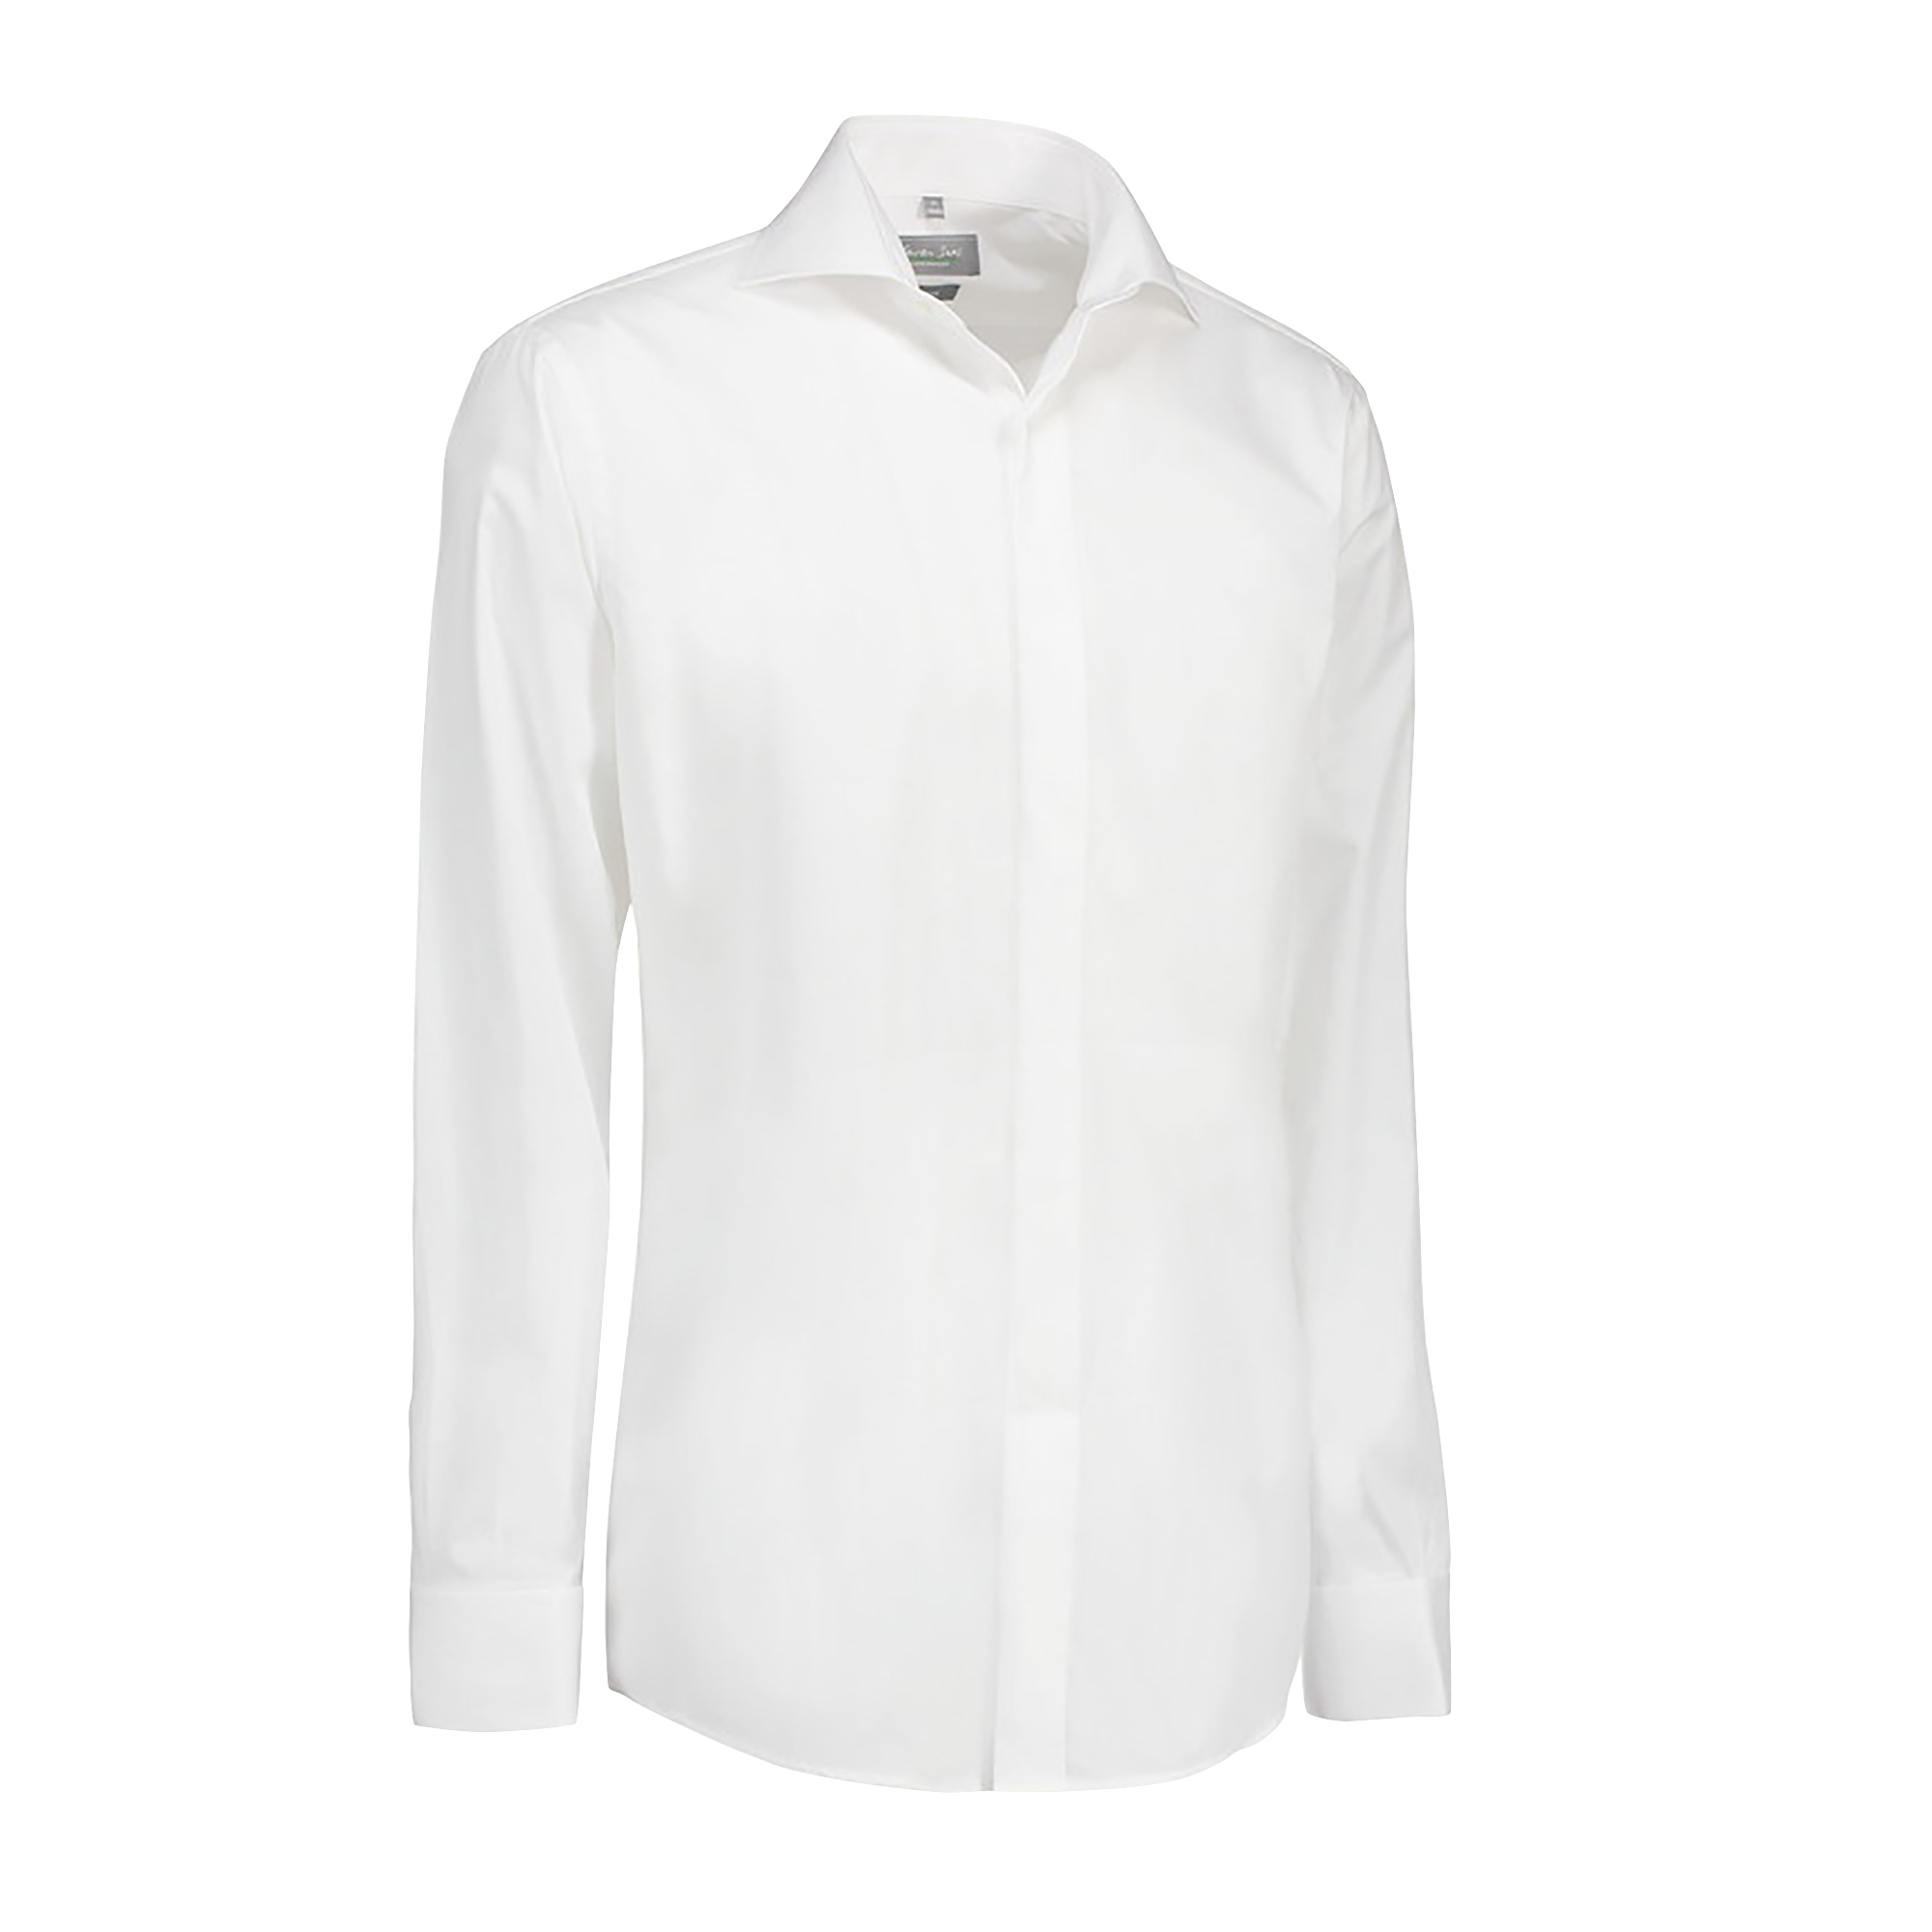 ID-Womens-Ladies-Poplin-Shirt-Tuxedo-Long-Sleeve-Slim-Fit-ID488